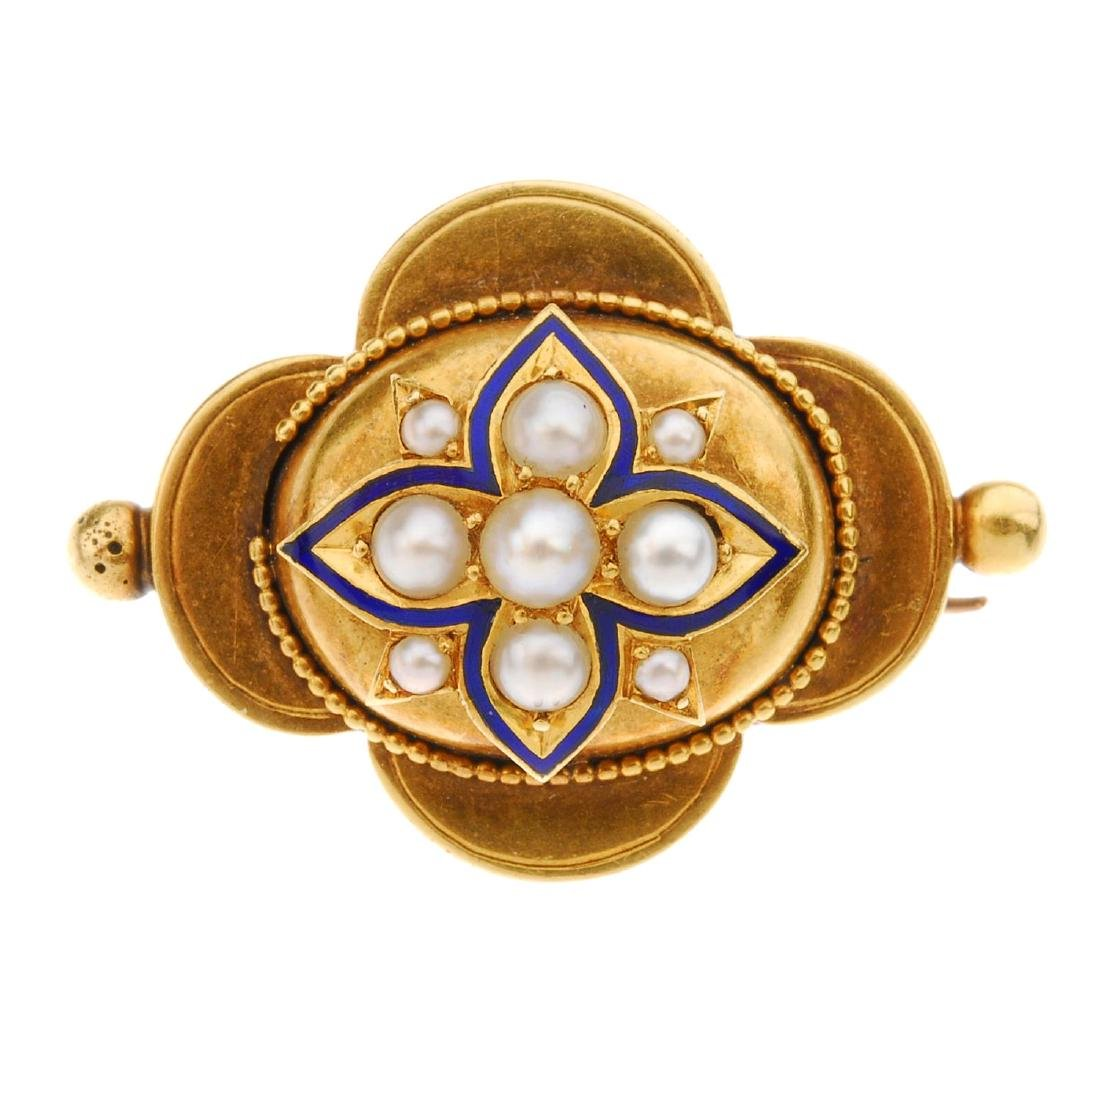 A late Victorian gold split pearl and enamel brooch.